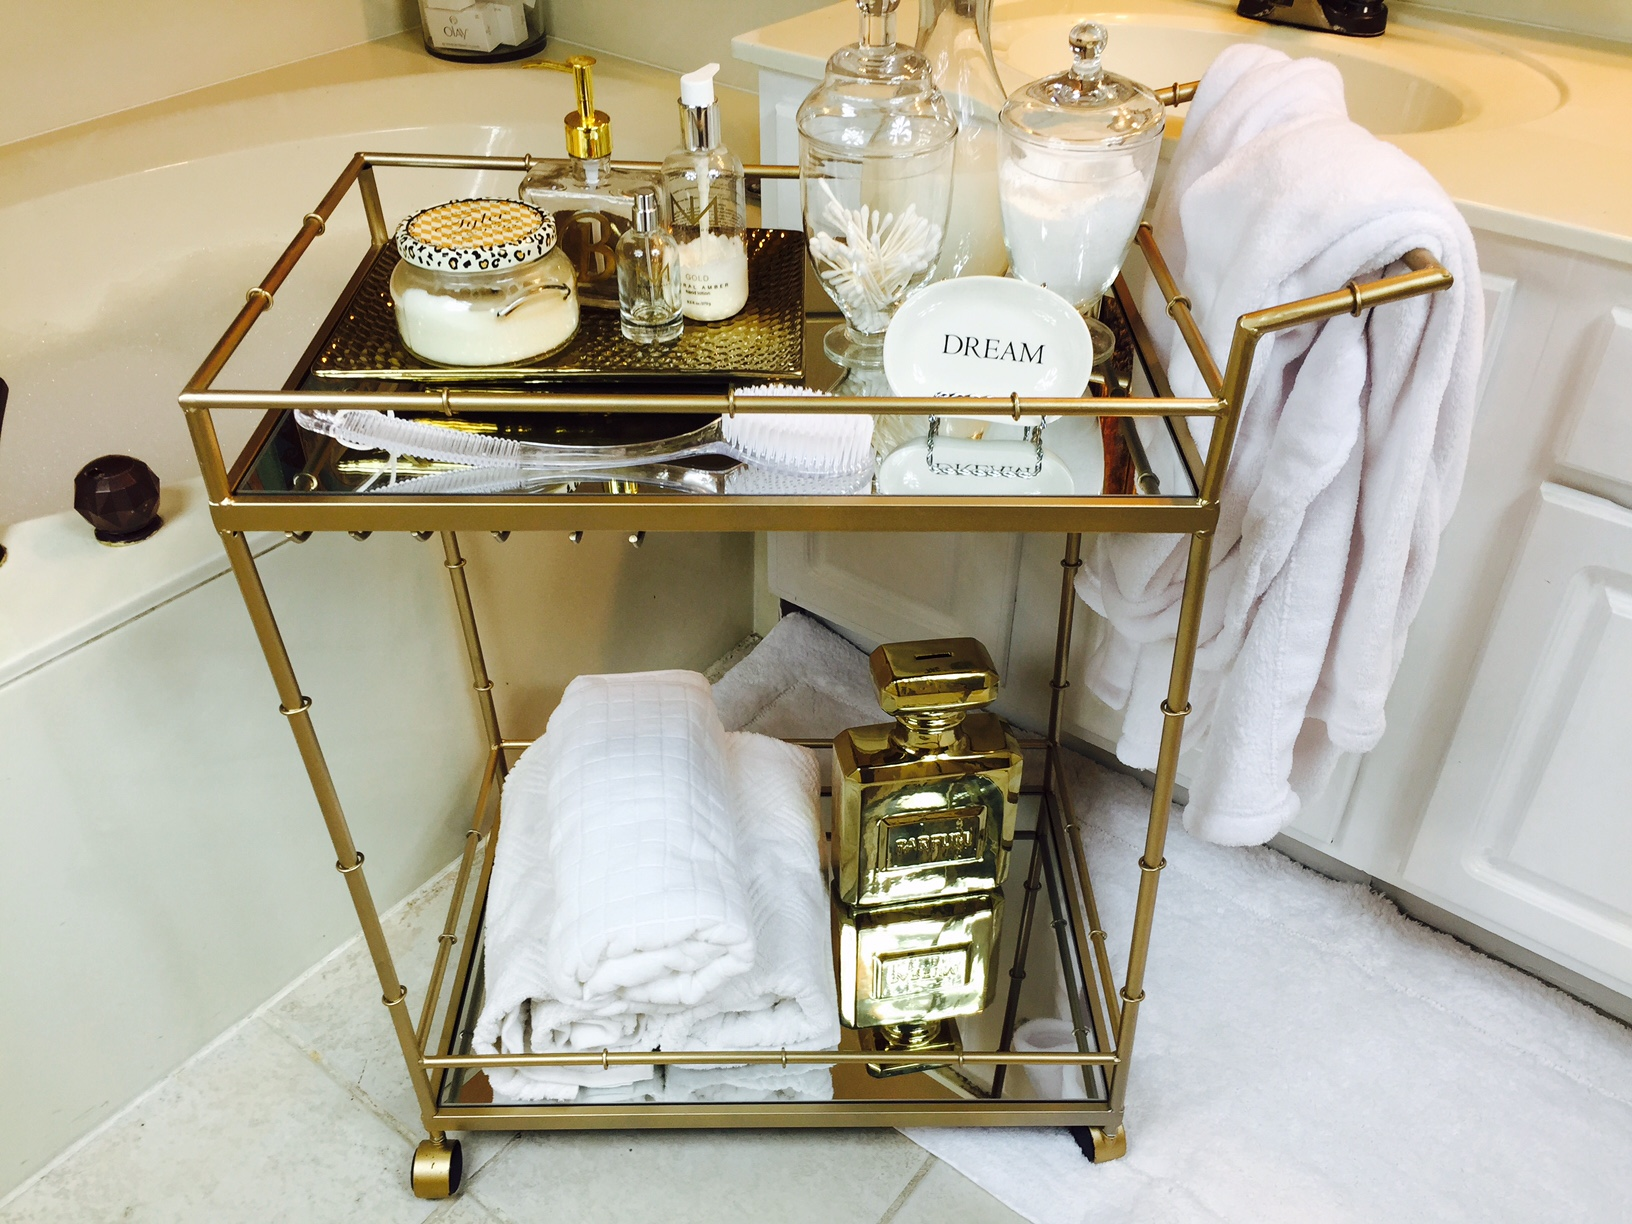 Bar cart in bathroom